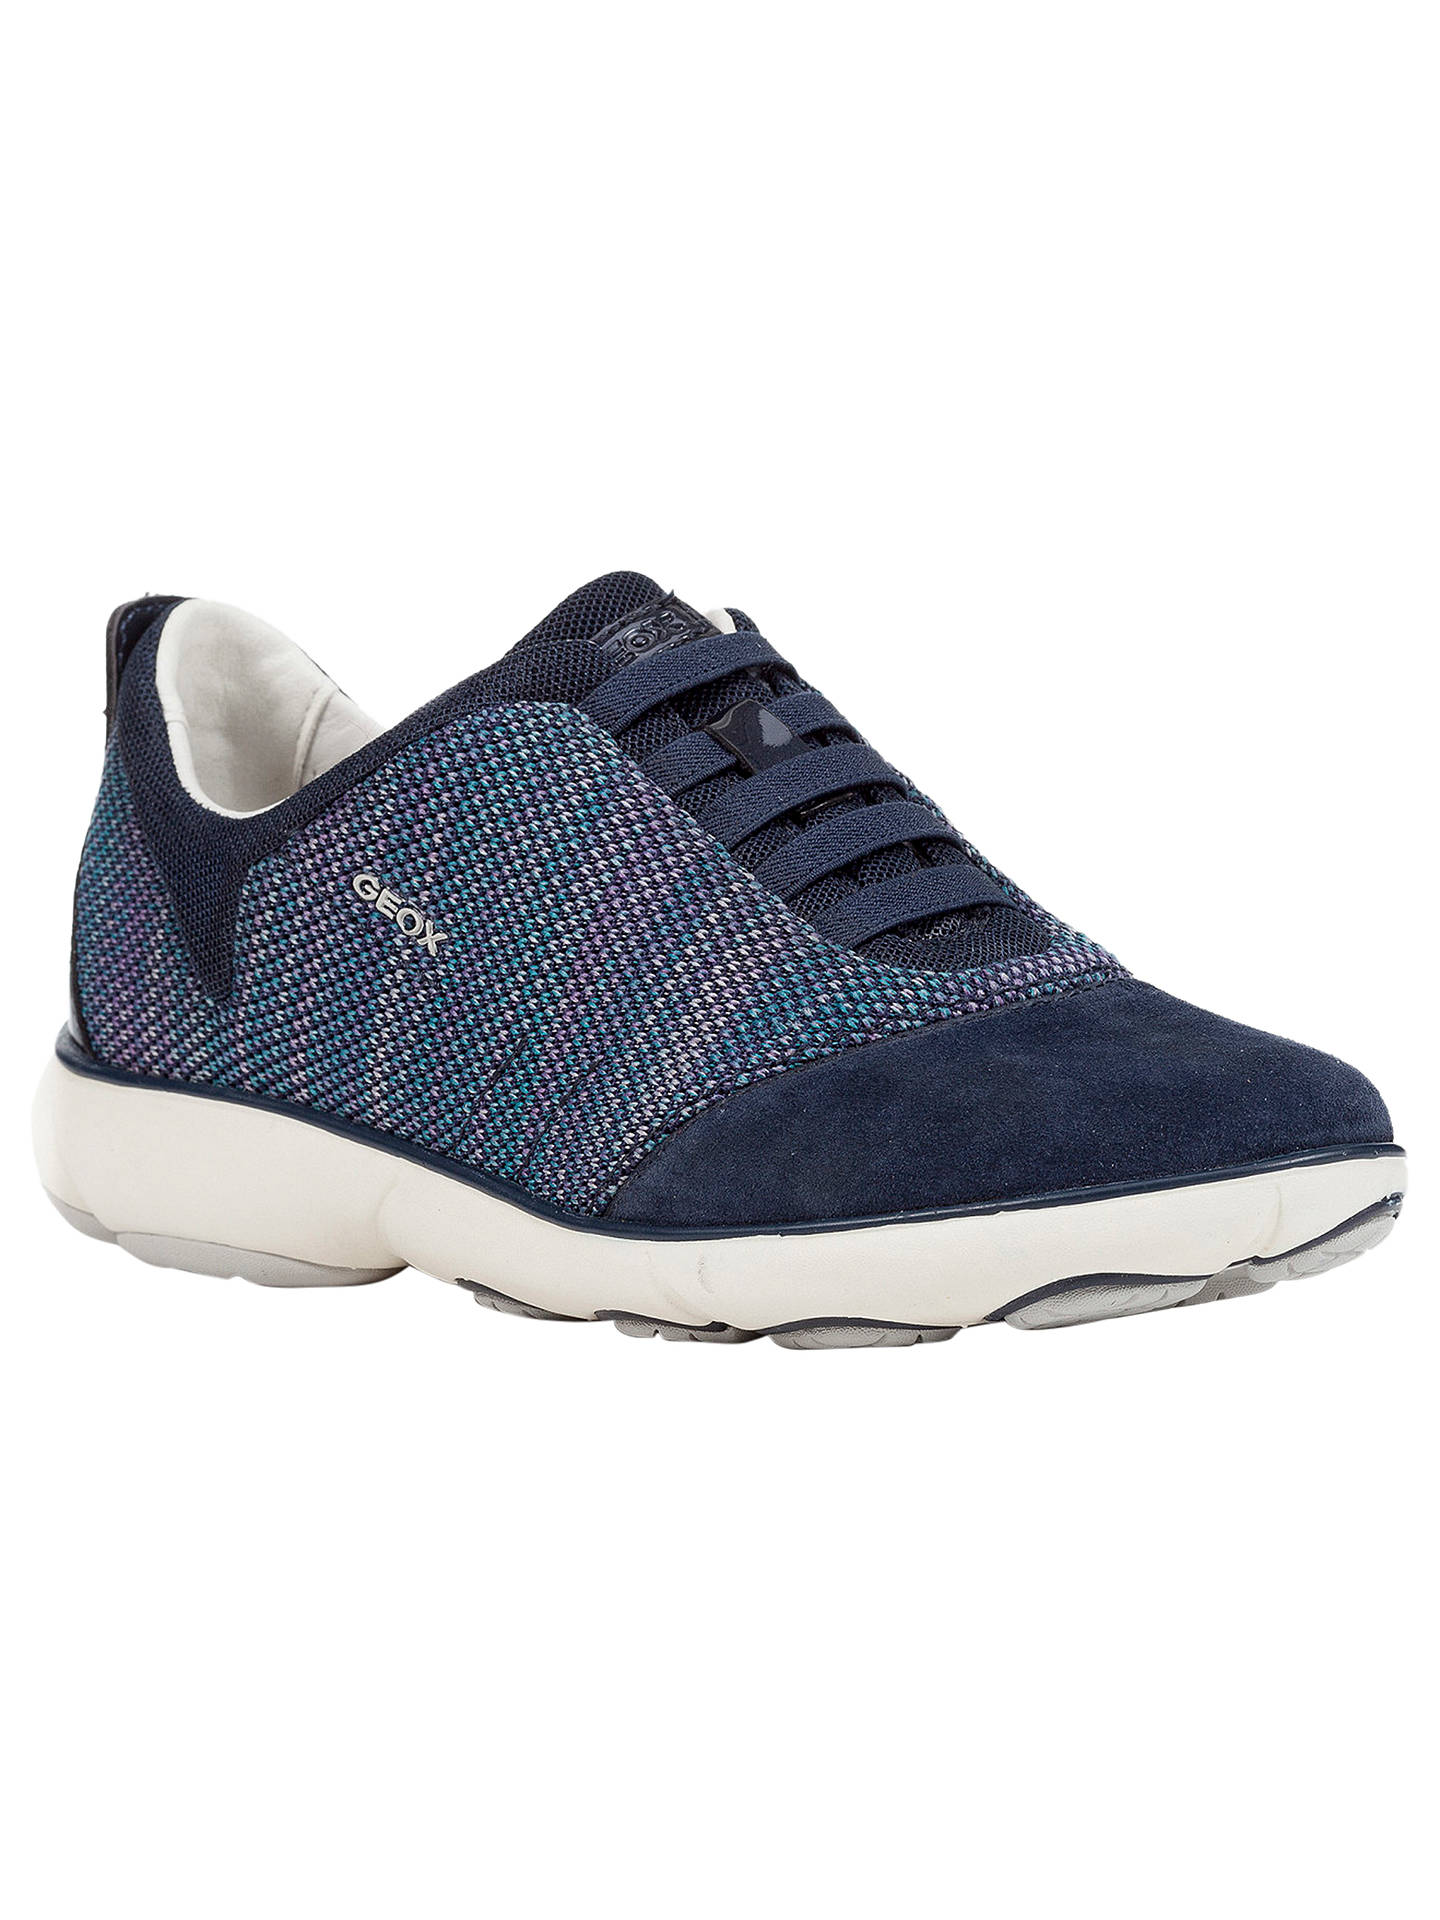 0de242948f2 Buy Geox Women's Nebula Breathable Slip On Trainers, Navy, 3 Online at  johnlewis.